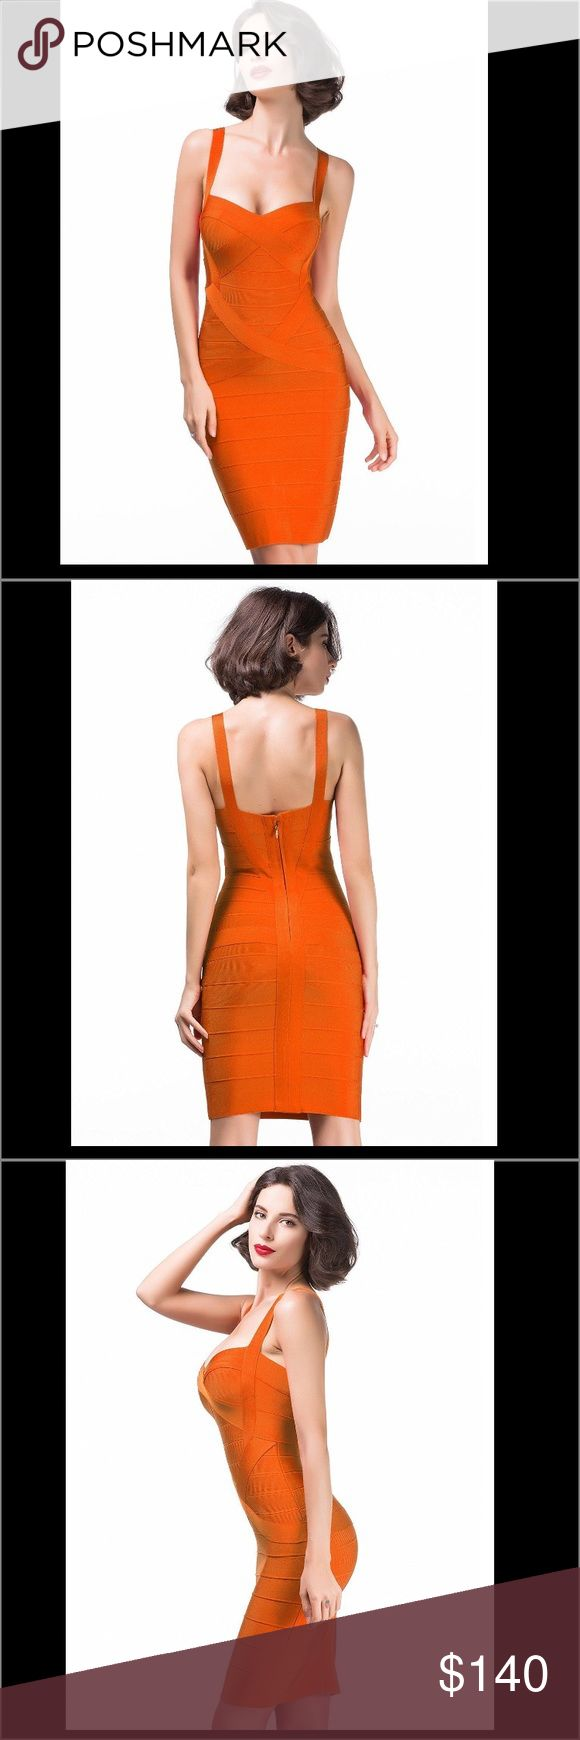 Orange bandage dress Turn up the heat in this ultra-flattering Deep V Neck Bandage Dress. This gold bandage dress designed to sculpt a gorgeous hourglass figure and featuring a sexy cut out deep v neck with zip fastening to rear.  Center back zipper with hook-and-eye closure. Fabric: 90% Rayon + 9% Nylon + 1% Spandex High quality heavyweight bandage. Delicate sewing and hemming by durable needle lockstitch machine. YKK zipper (known as the most durable and reliable zippers manufactured…